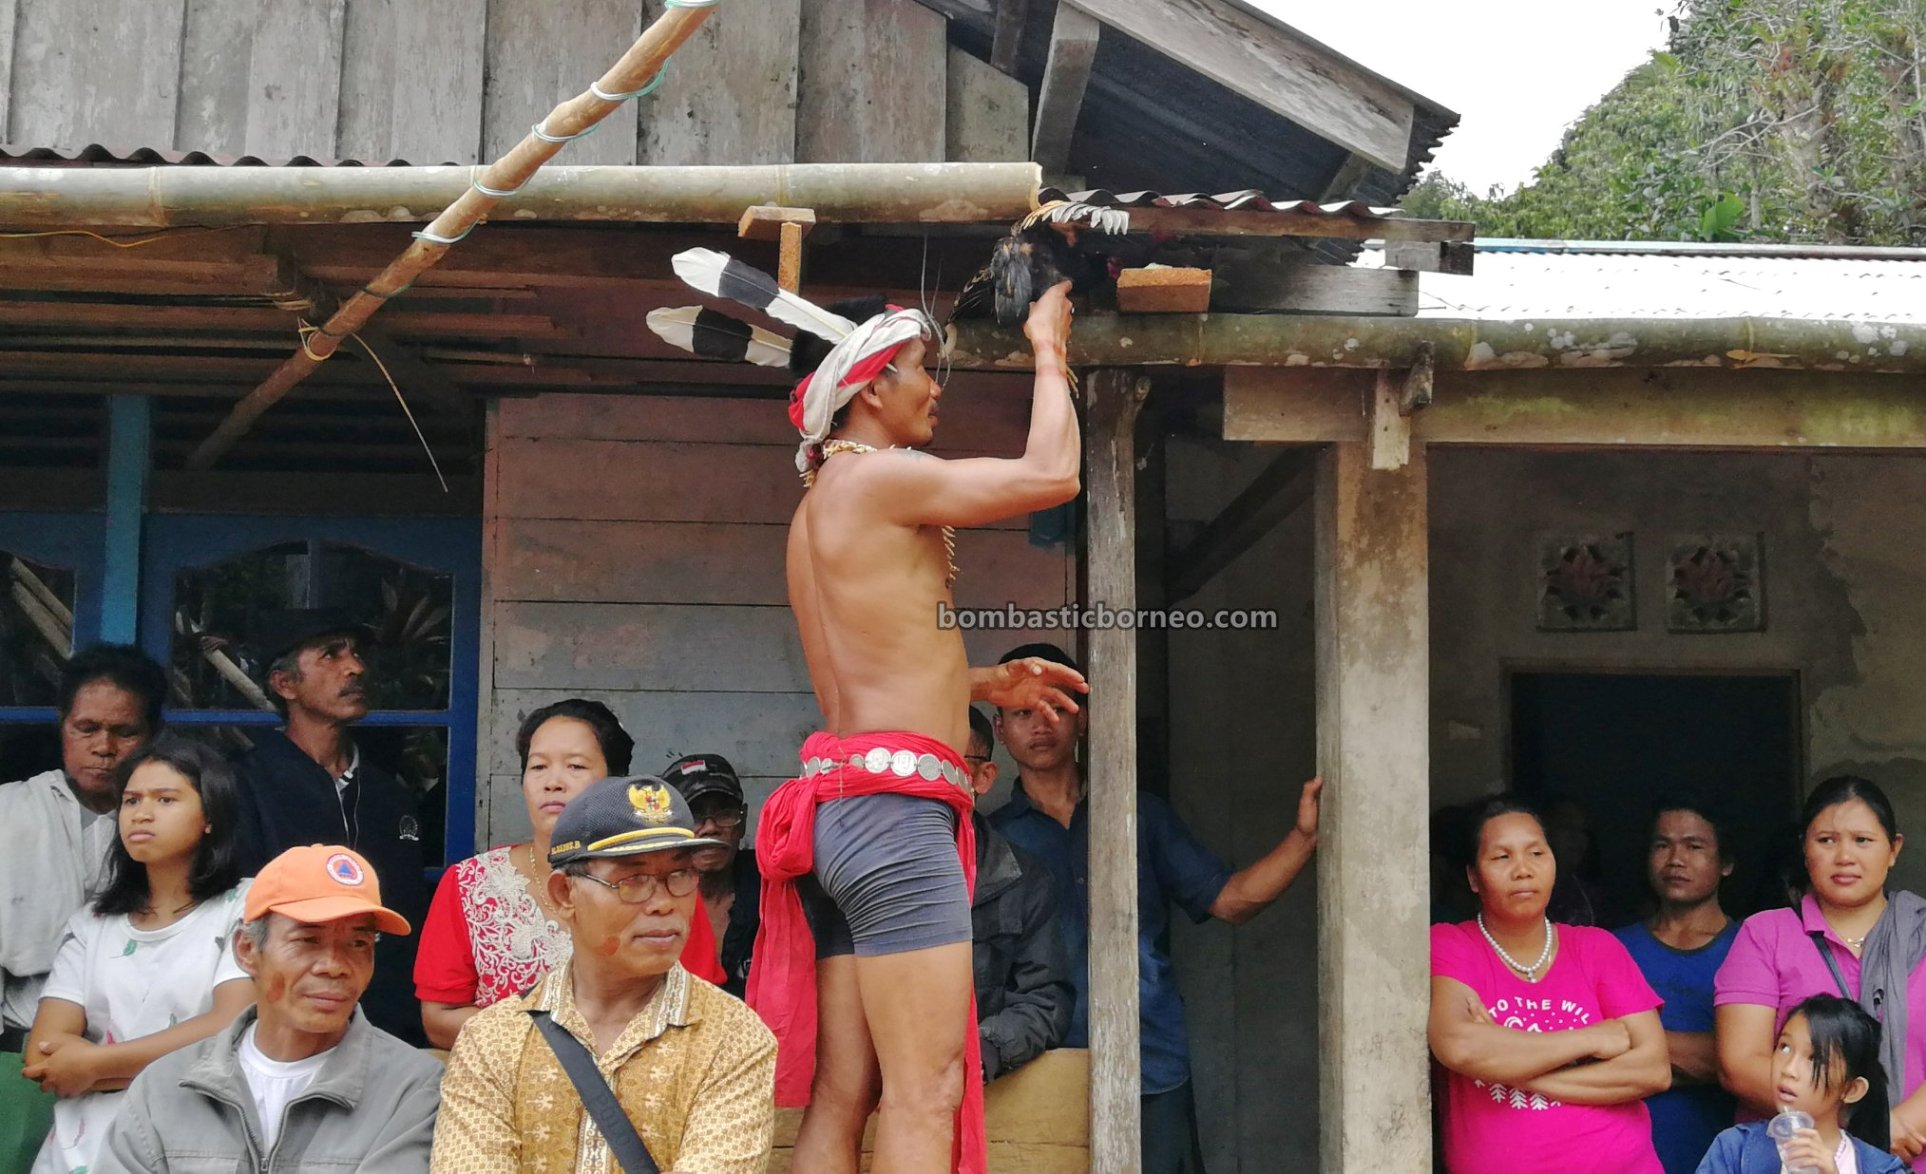 Paddy Harvest Festival, authentic, backpackers, village, budaya, culture, Bengkayang, Seluas, tribe, Dsayak Bidayuh, Tourism, cross border, Borneo, 婆罗洲西加里曼丹, 孟加映比达友族部落, 印尼土著传统文化